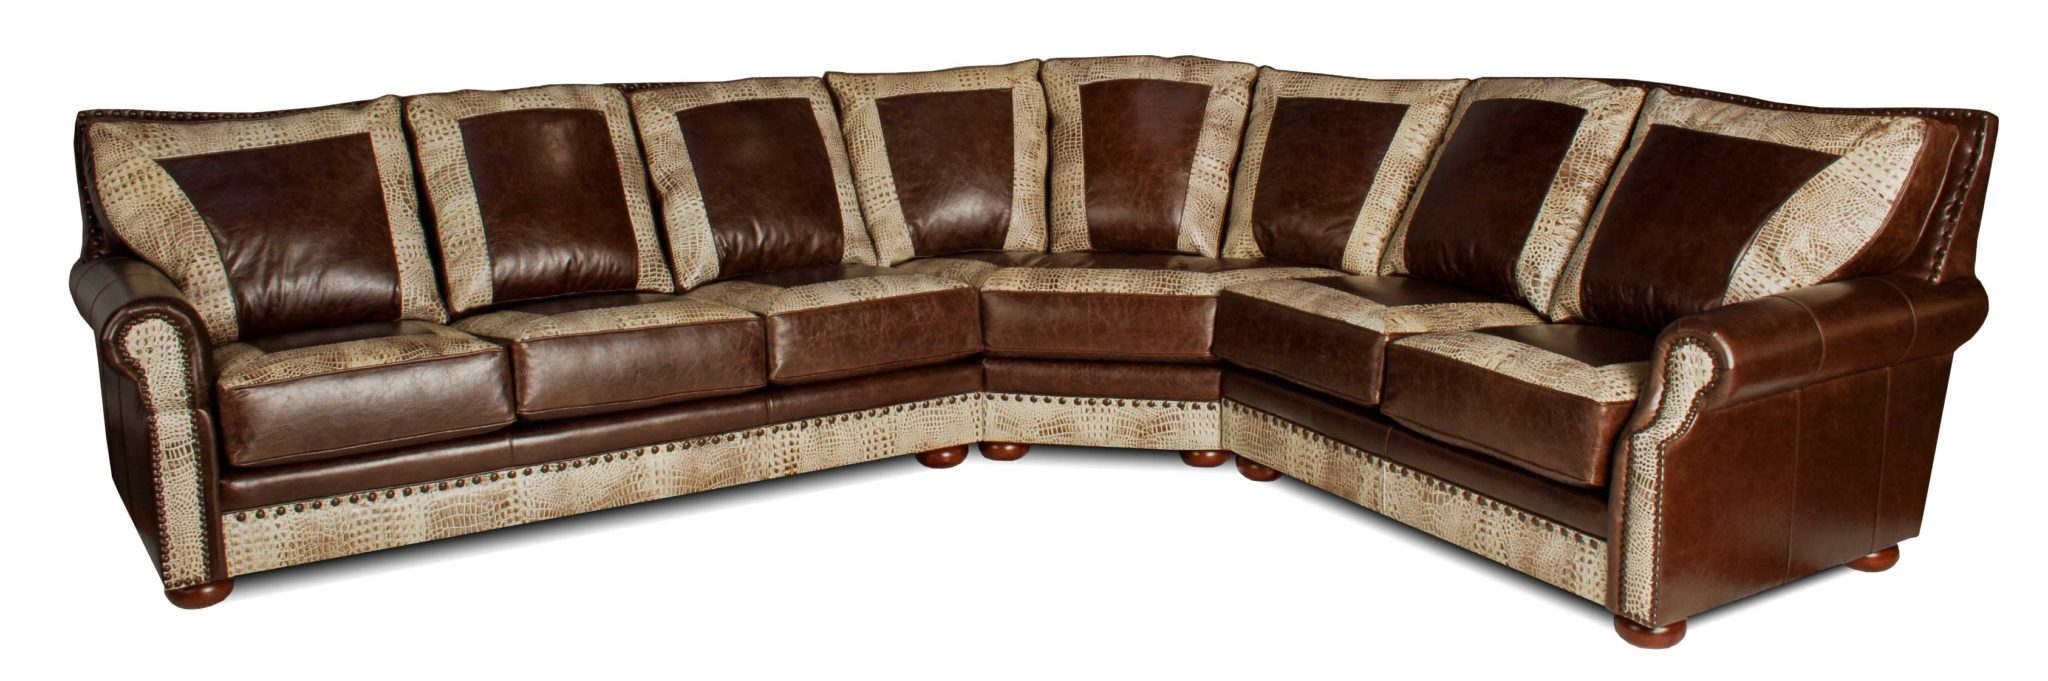 p-1010-texas-leather-interior-sectional